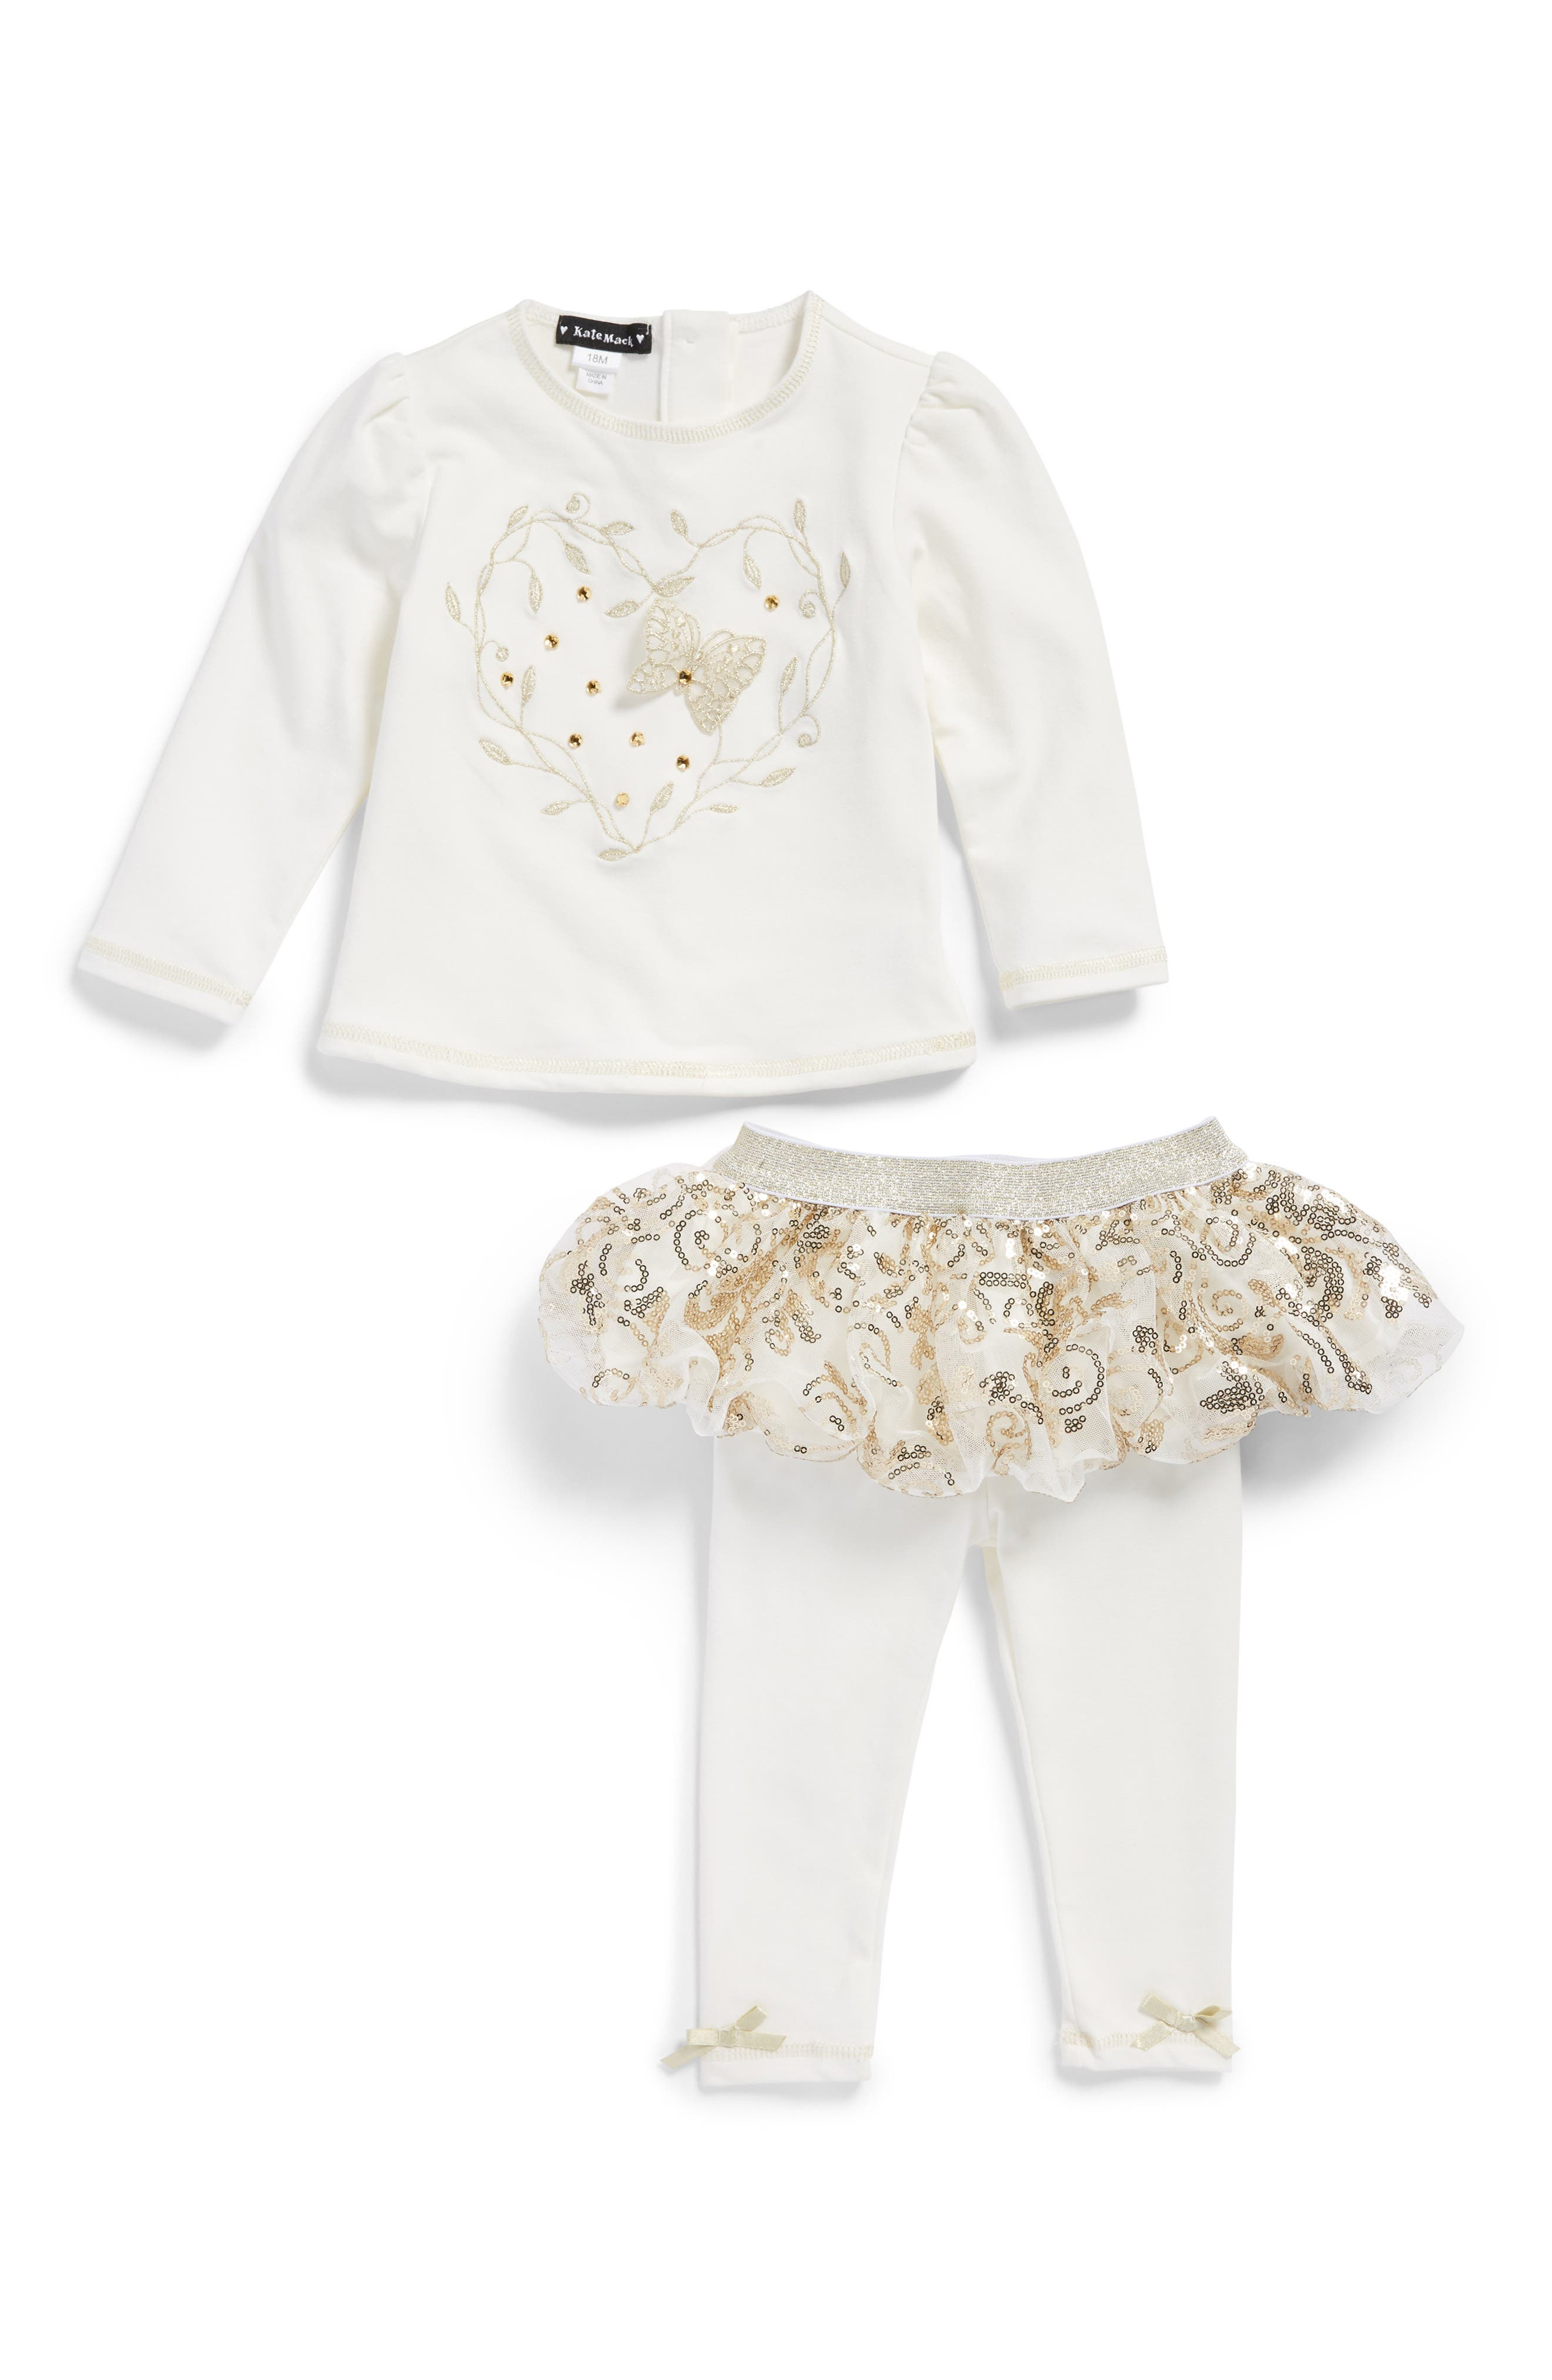 Main Image - Kate Mack Embroidered Top & Skirted Leggings Set (Baby Girls)